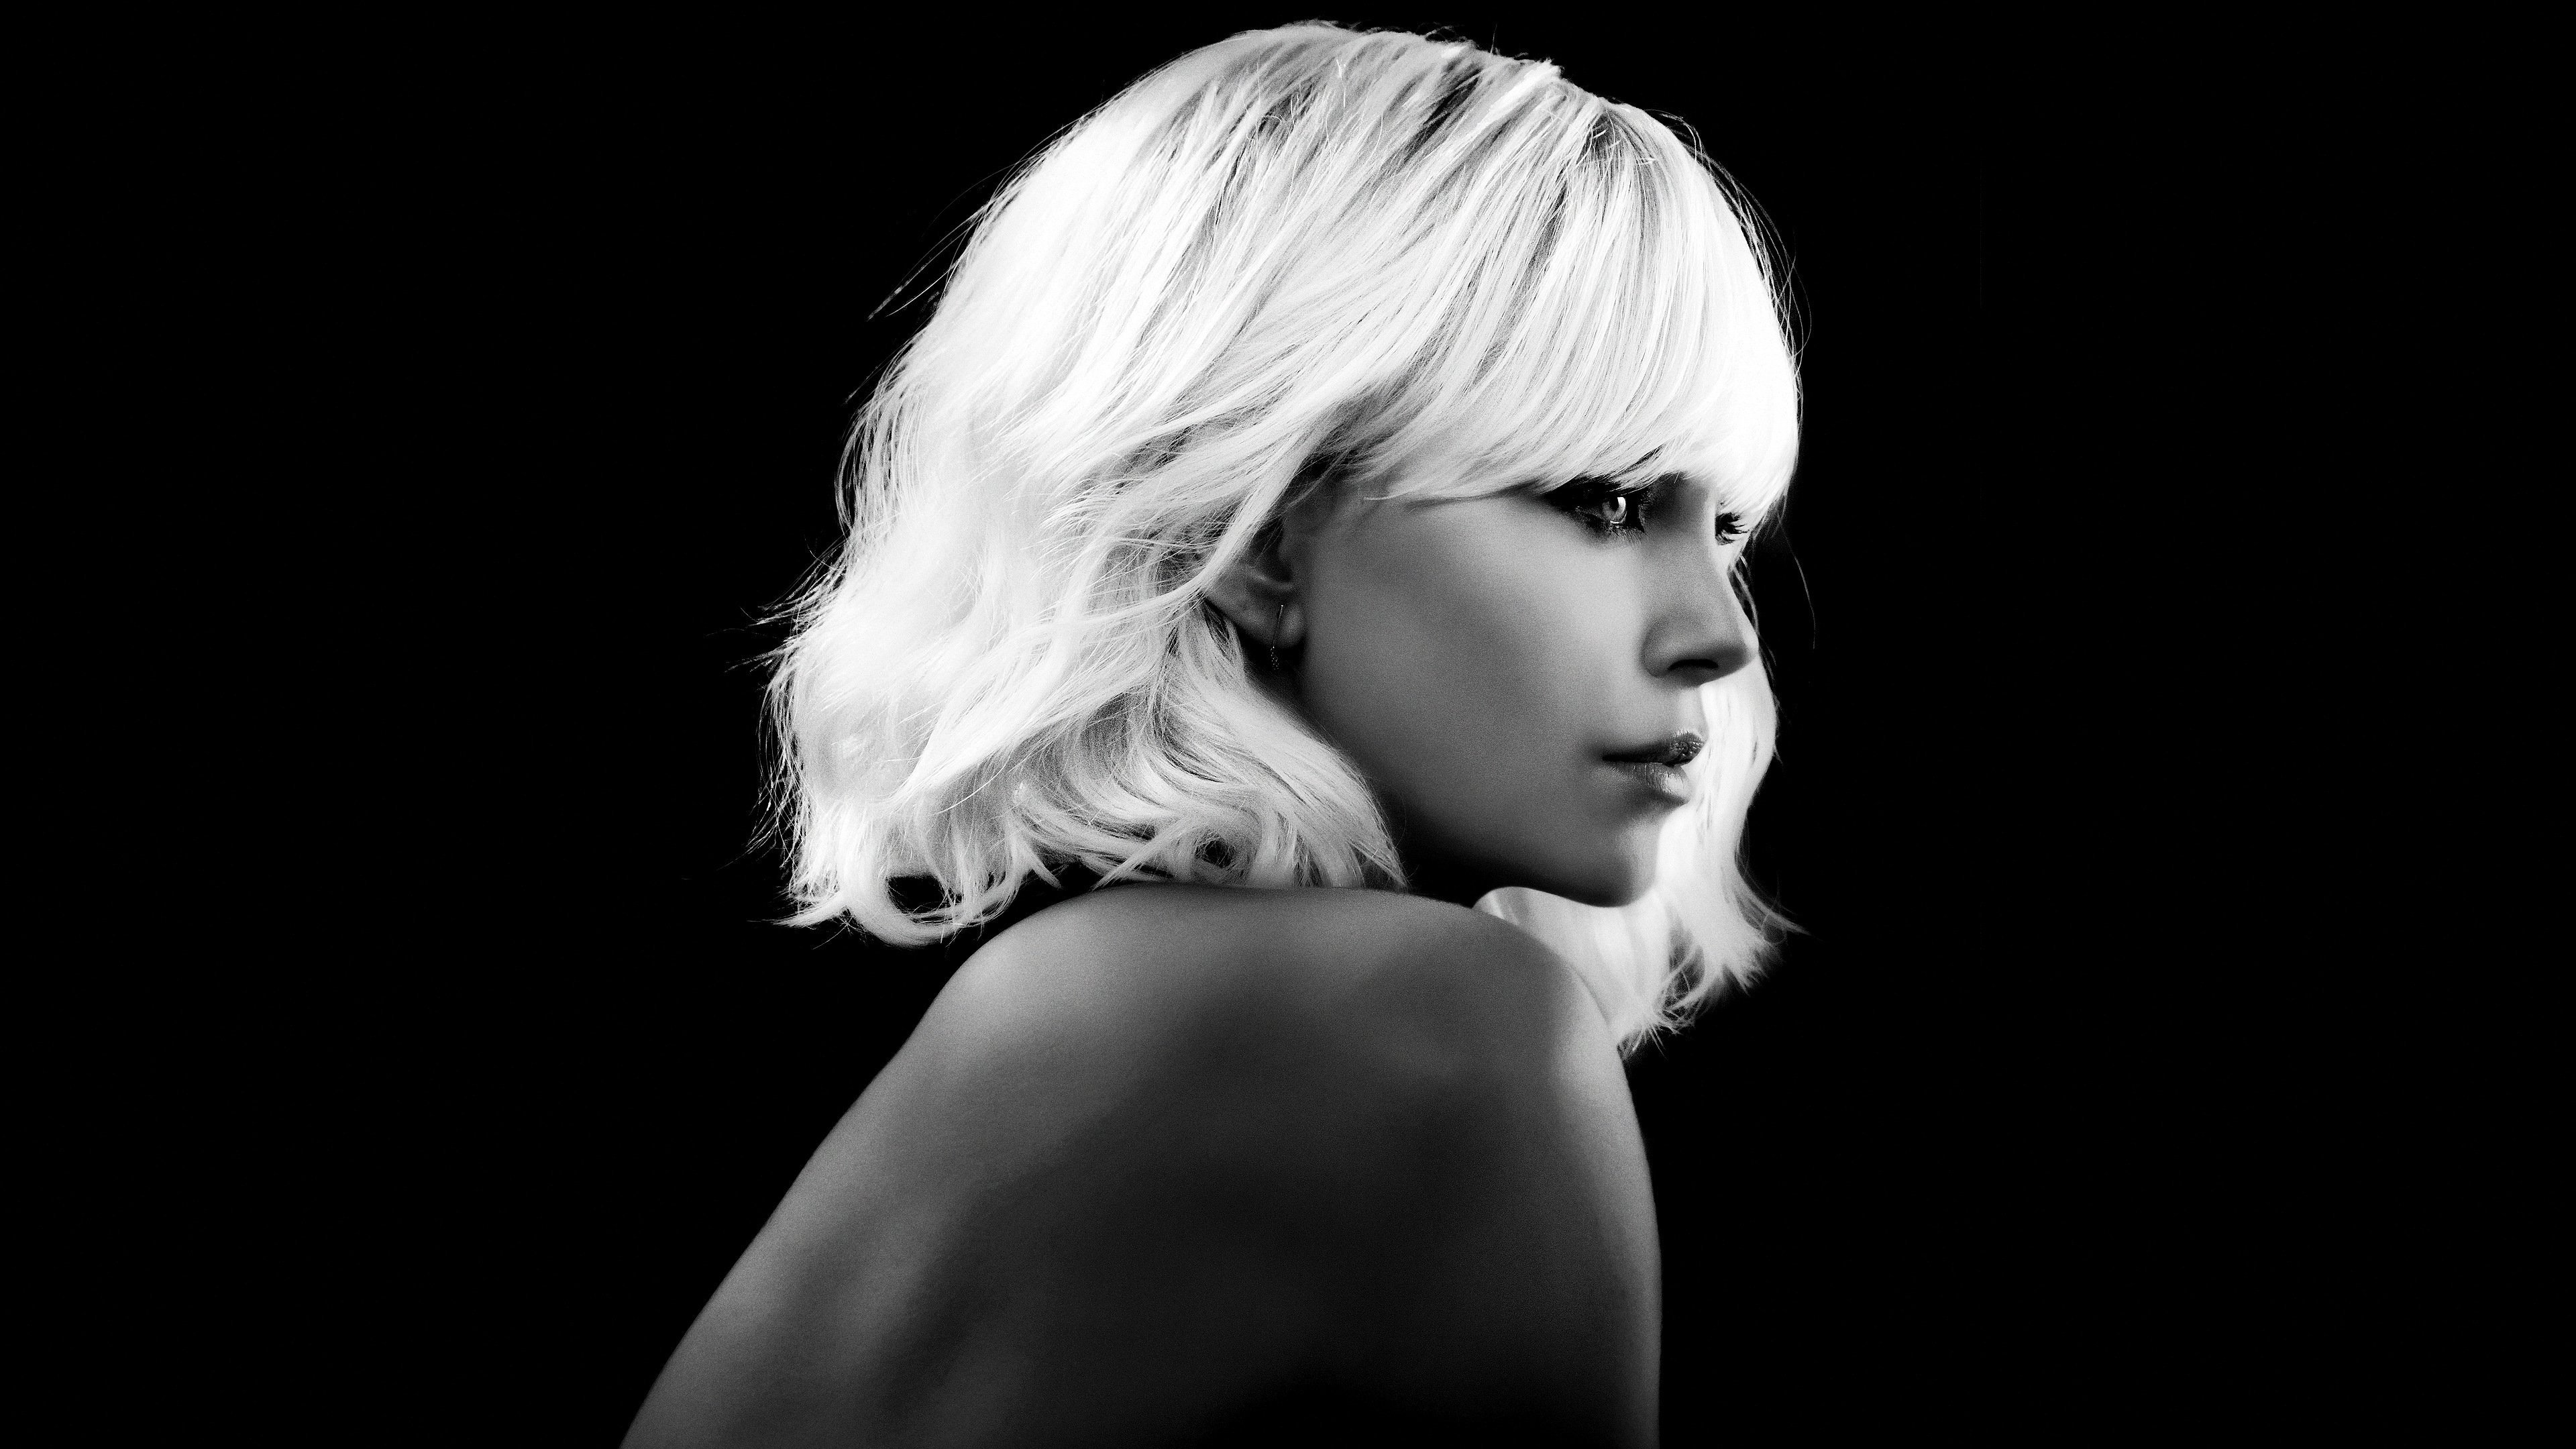 Charlize Theron in Atomic Blonde 4K Wallpapers